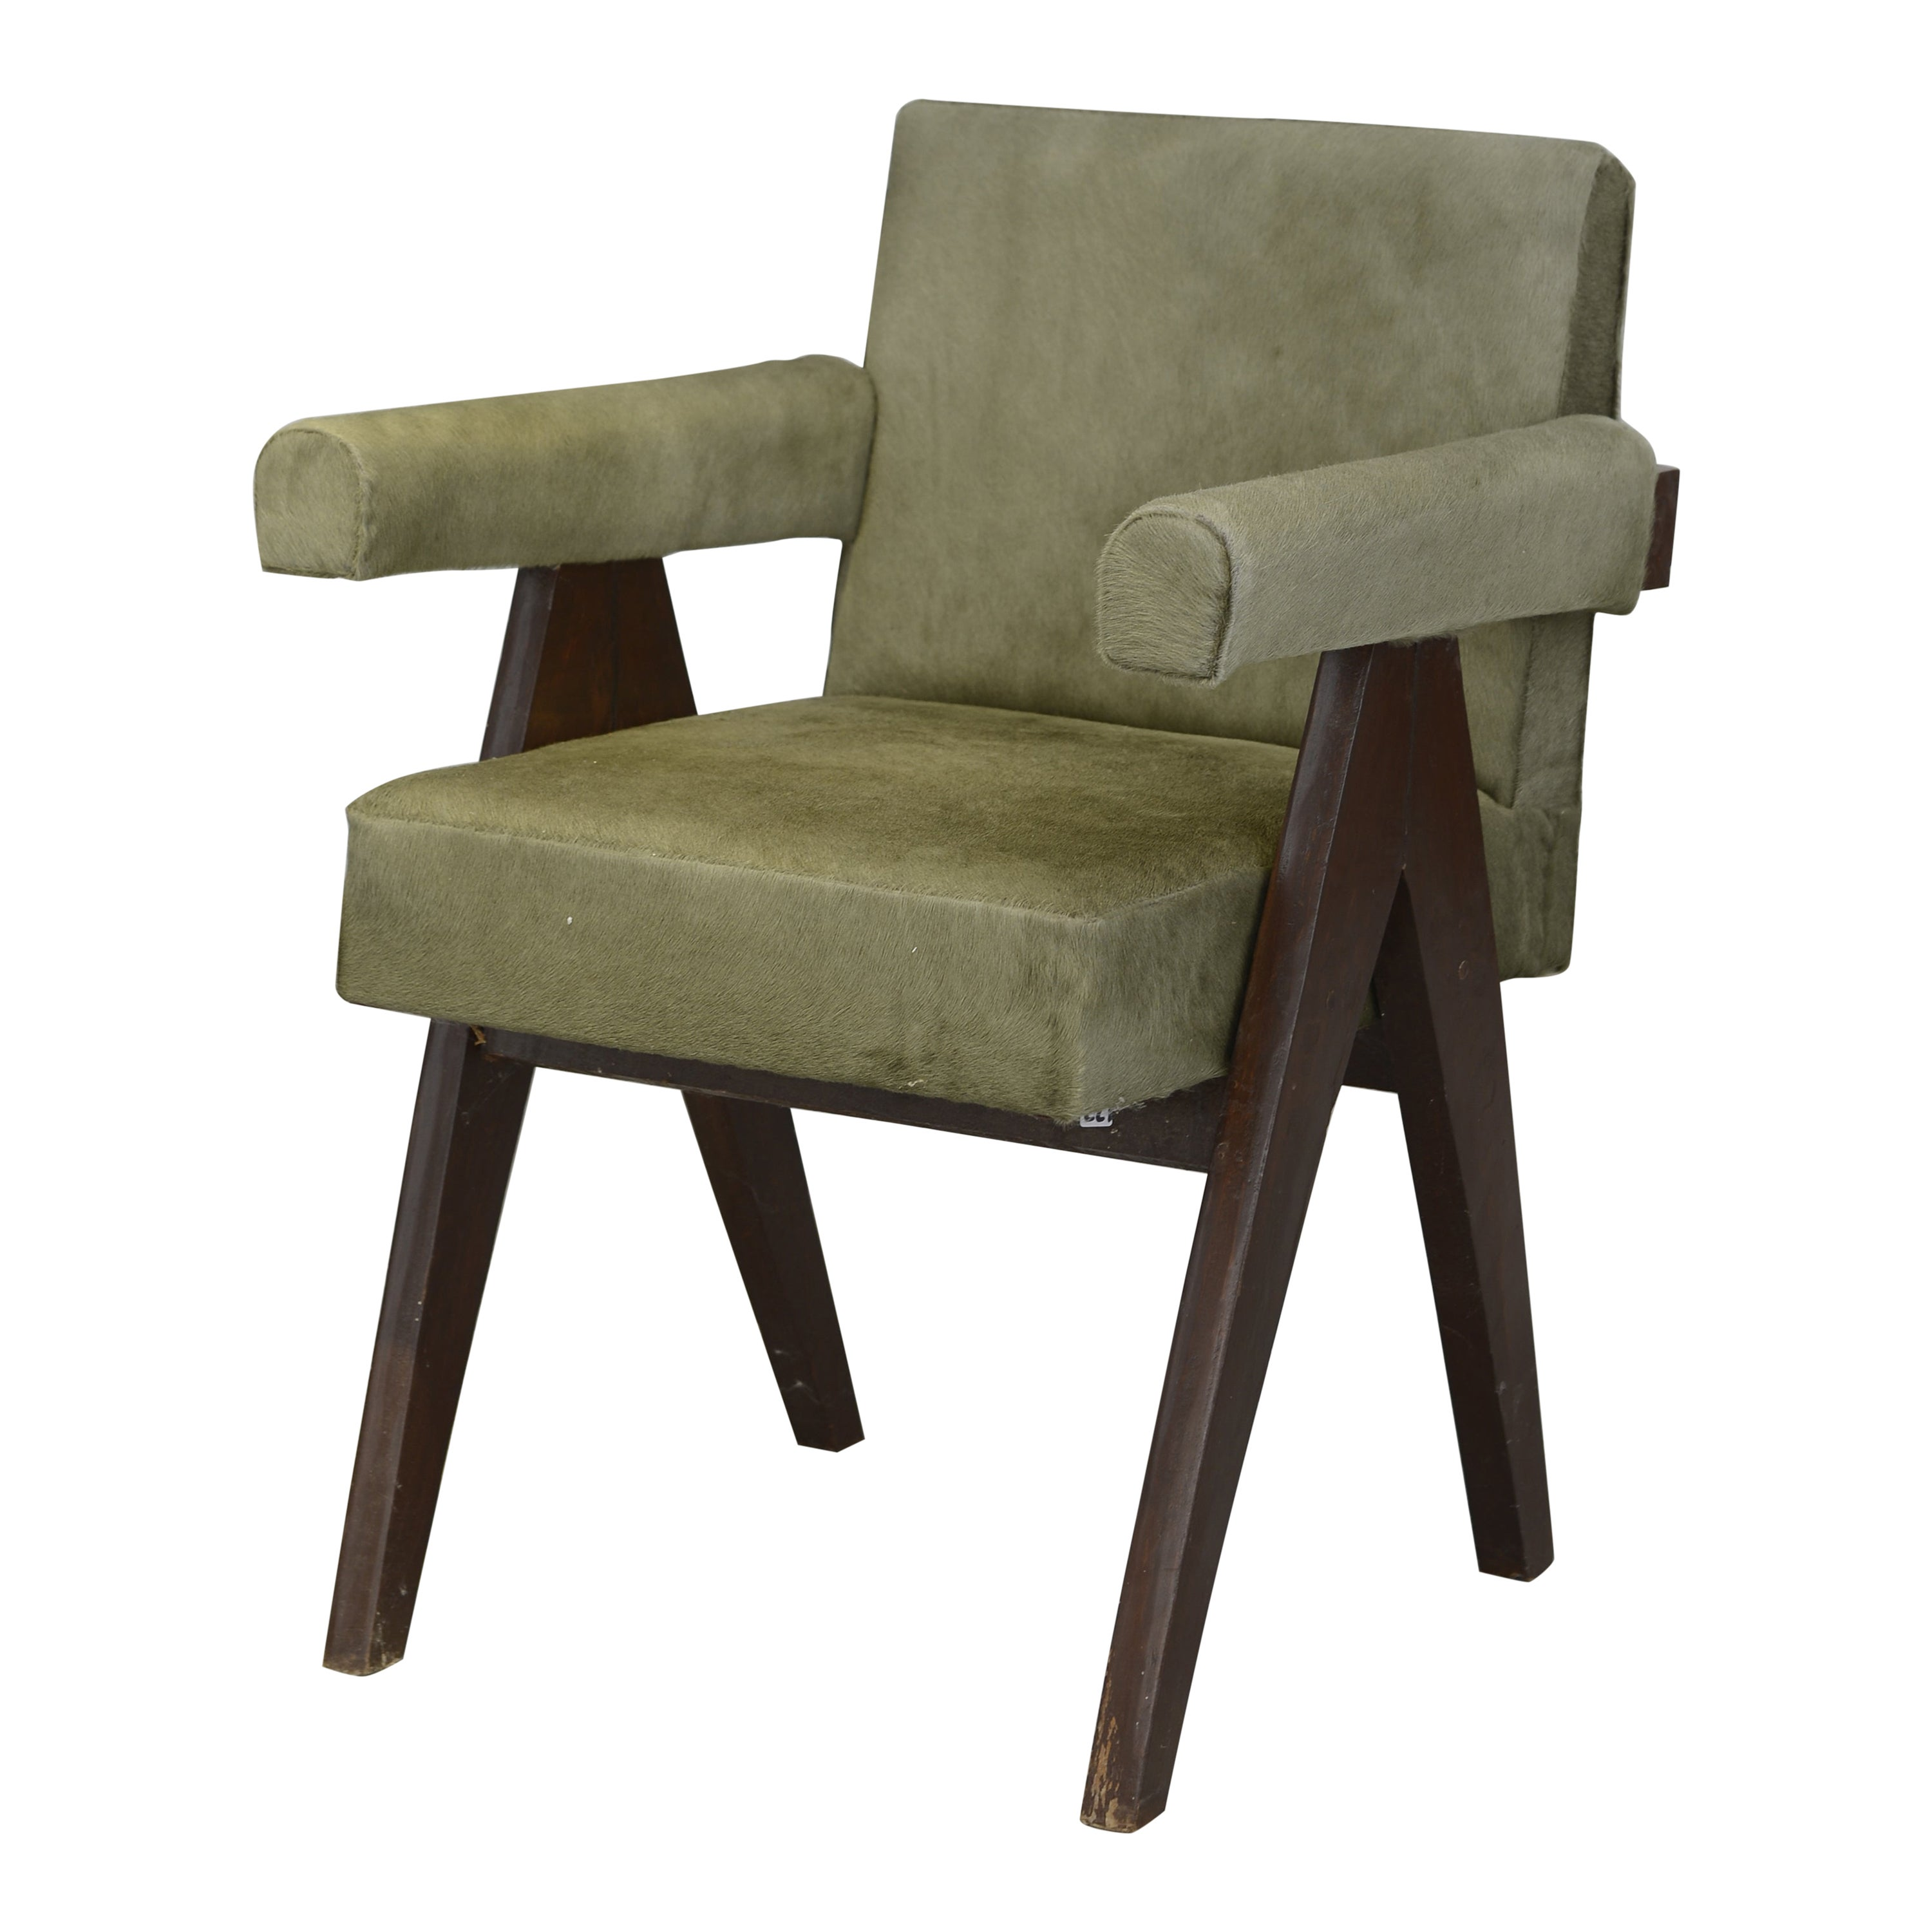 Pierre Jeanneret Committee Chair, PJ-SI-30-C, Authentic